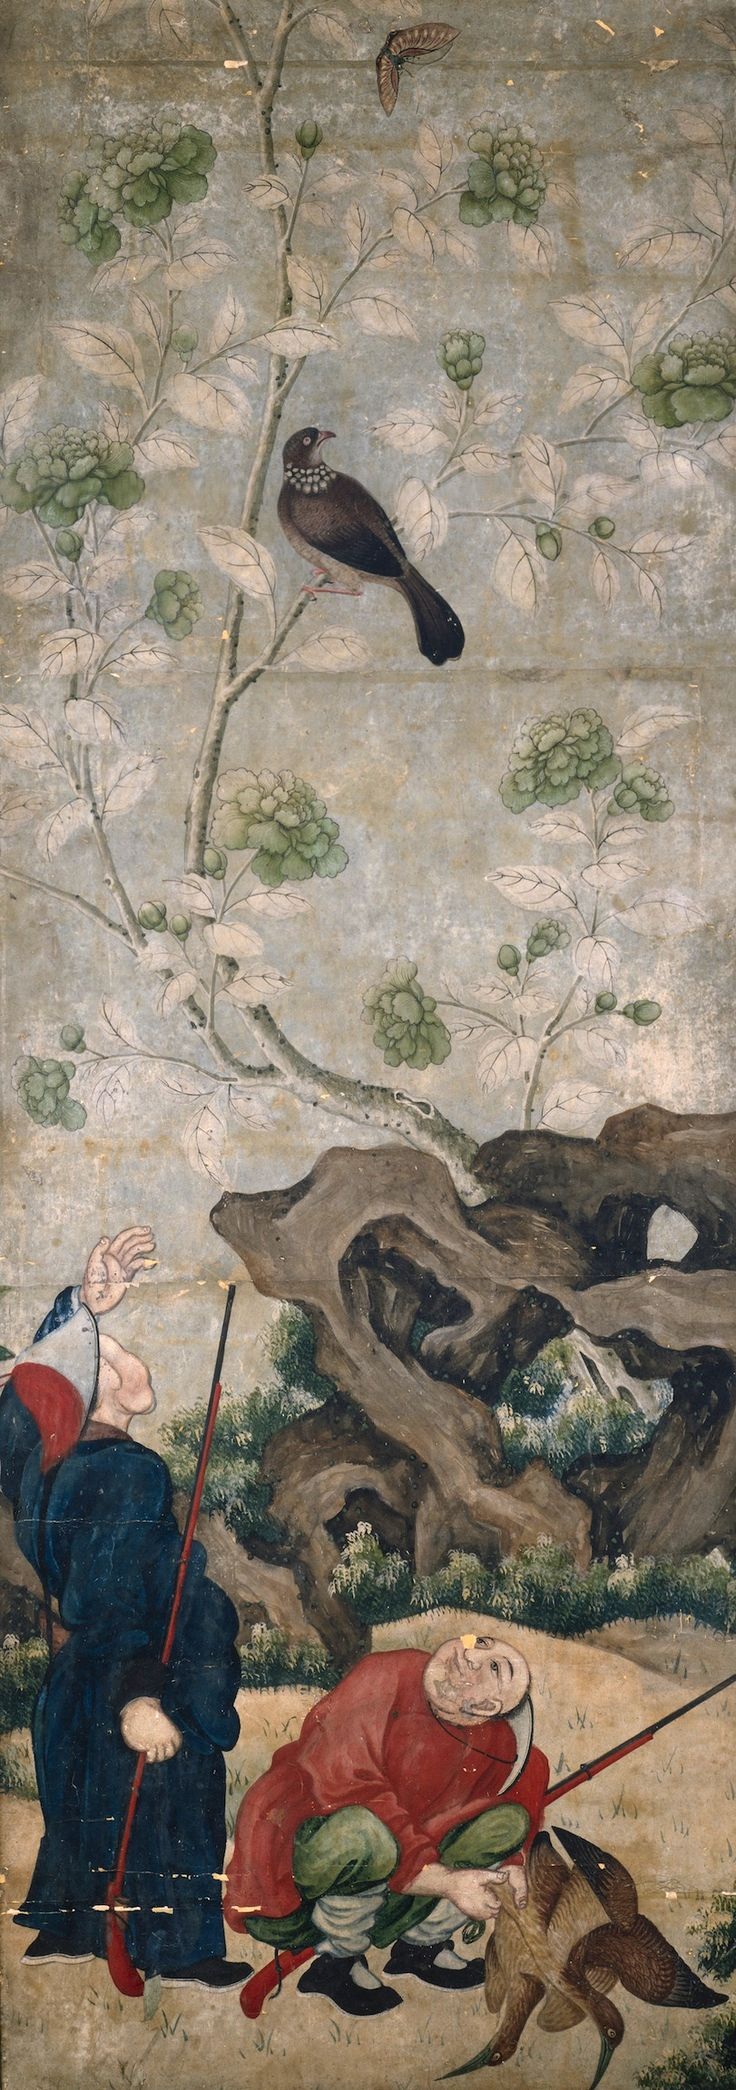 Panel of contemporary wallpaper from UK-based SurfaceView; image from original 18th c. Chinese goache on paper.